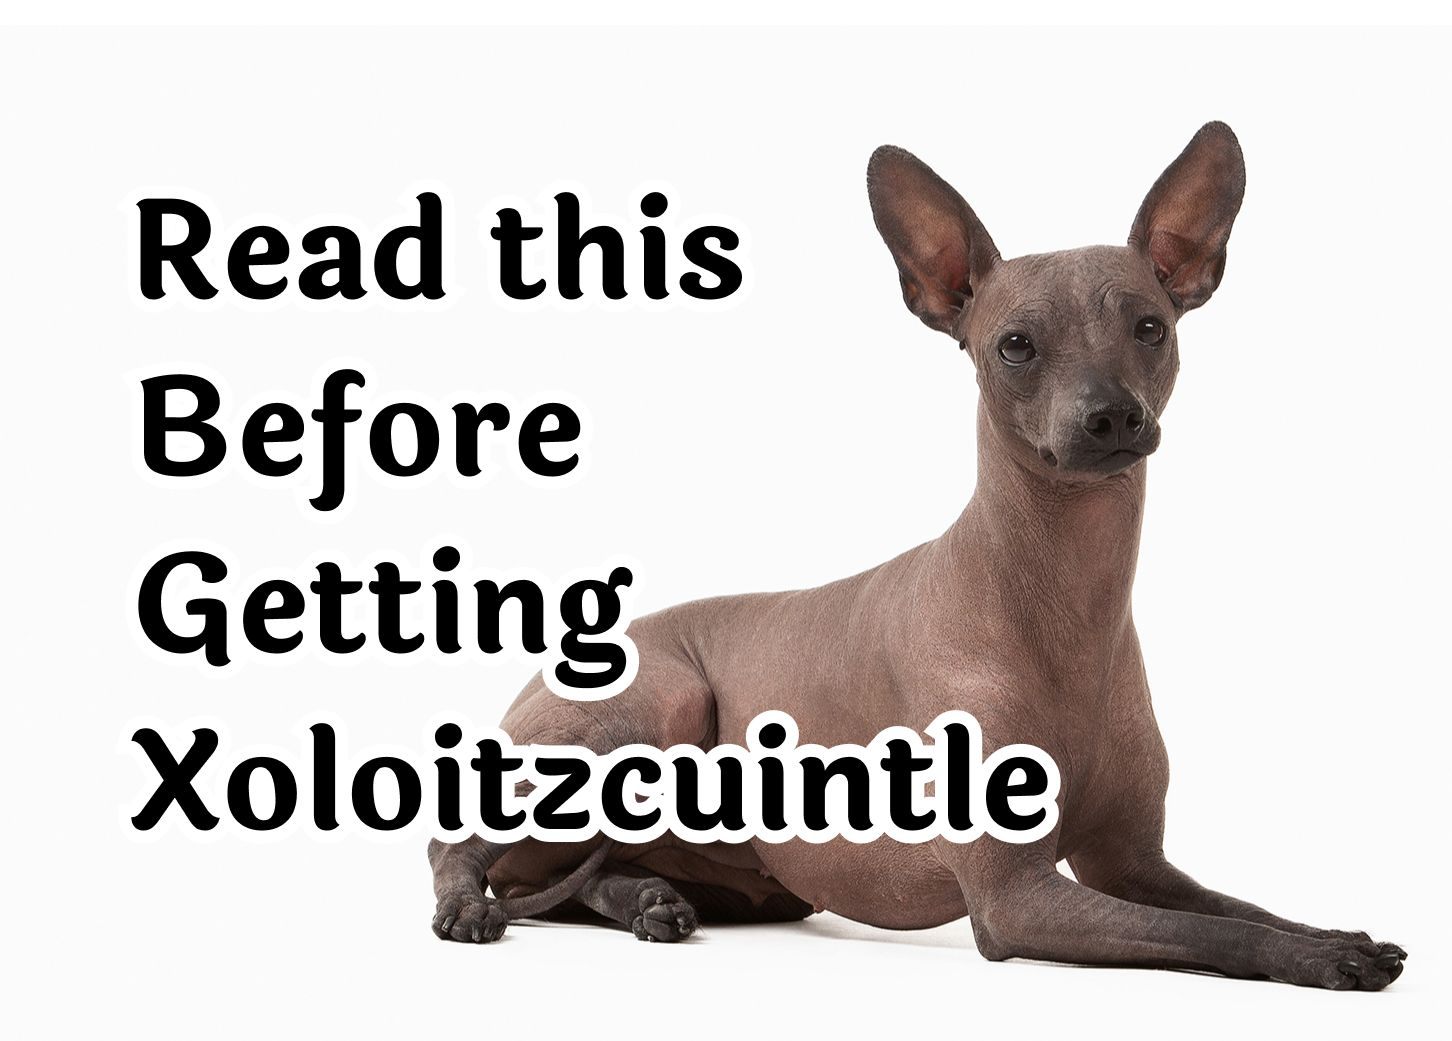 29 Questions to Consider Before Getting An Xoloitzcuintle